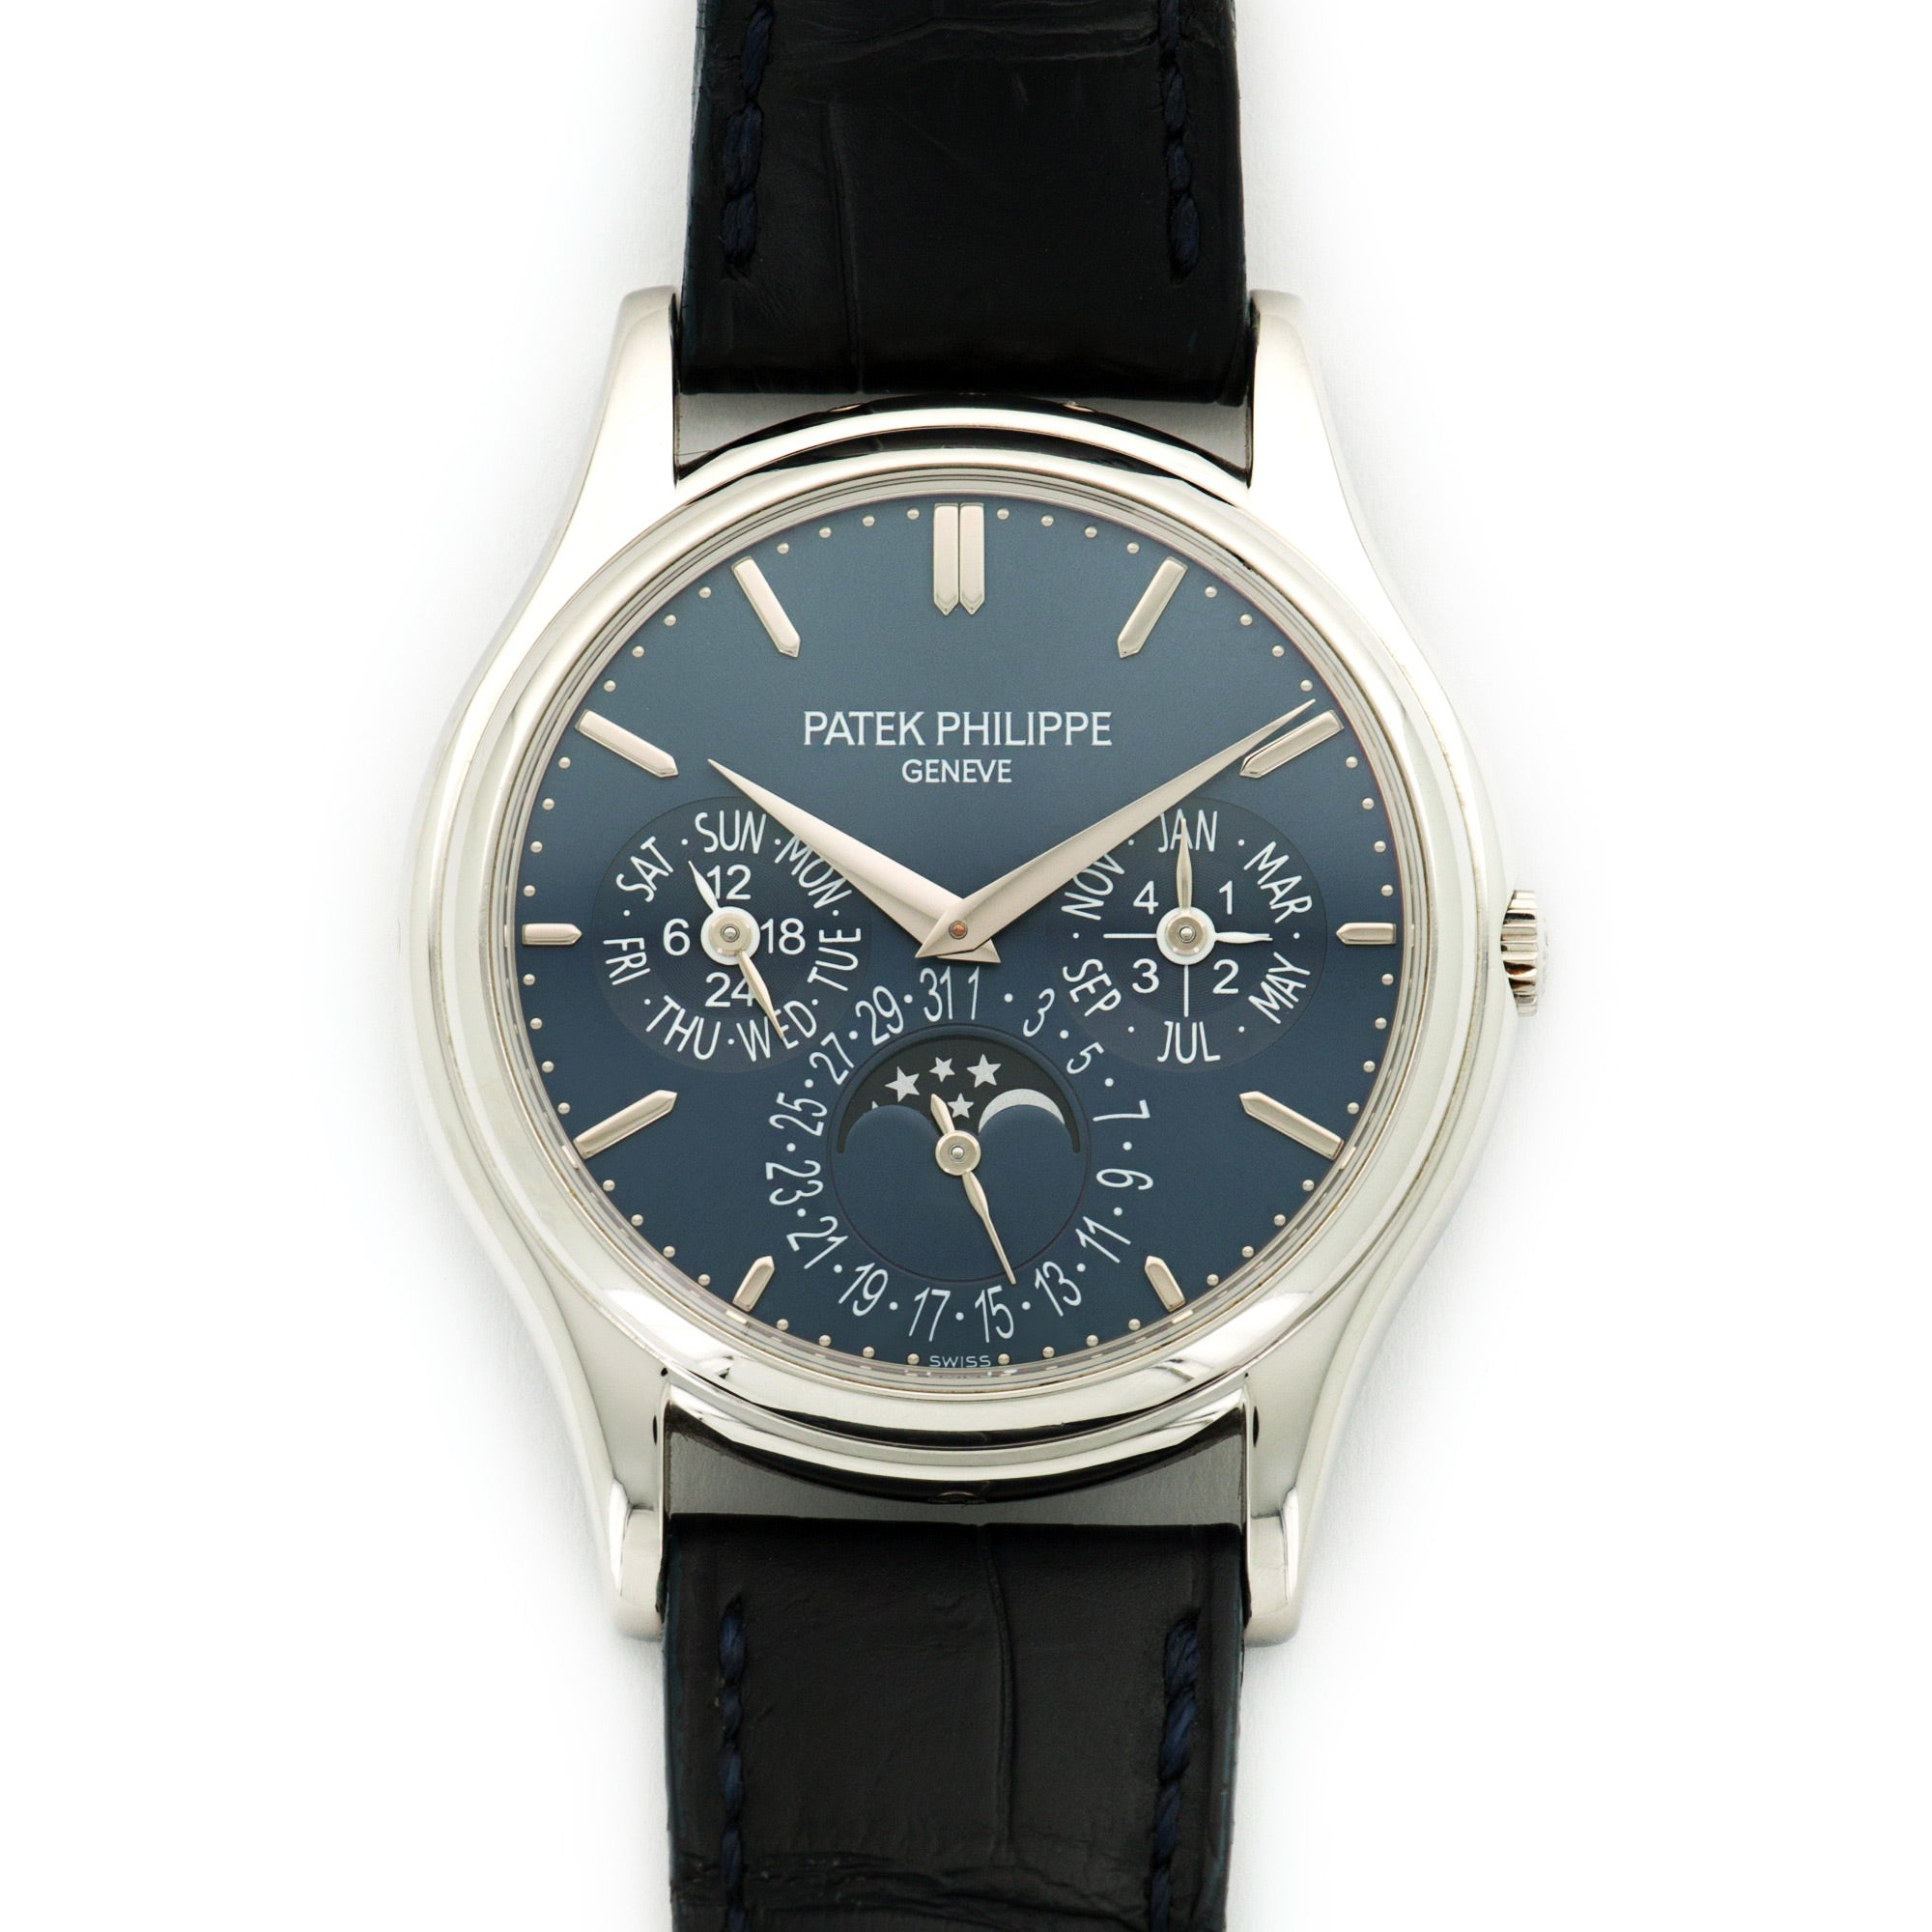 Patek Philippe Perpetual Calendar 5140P Platinum  Likely Never Polished, Original Finish Gents Platinum Blue 37.5mm Automatic 2014 Dark Blue Crocodile Original Box and Certificate